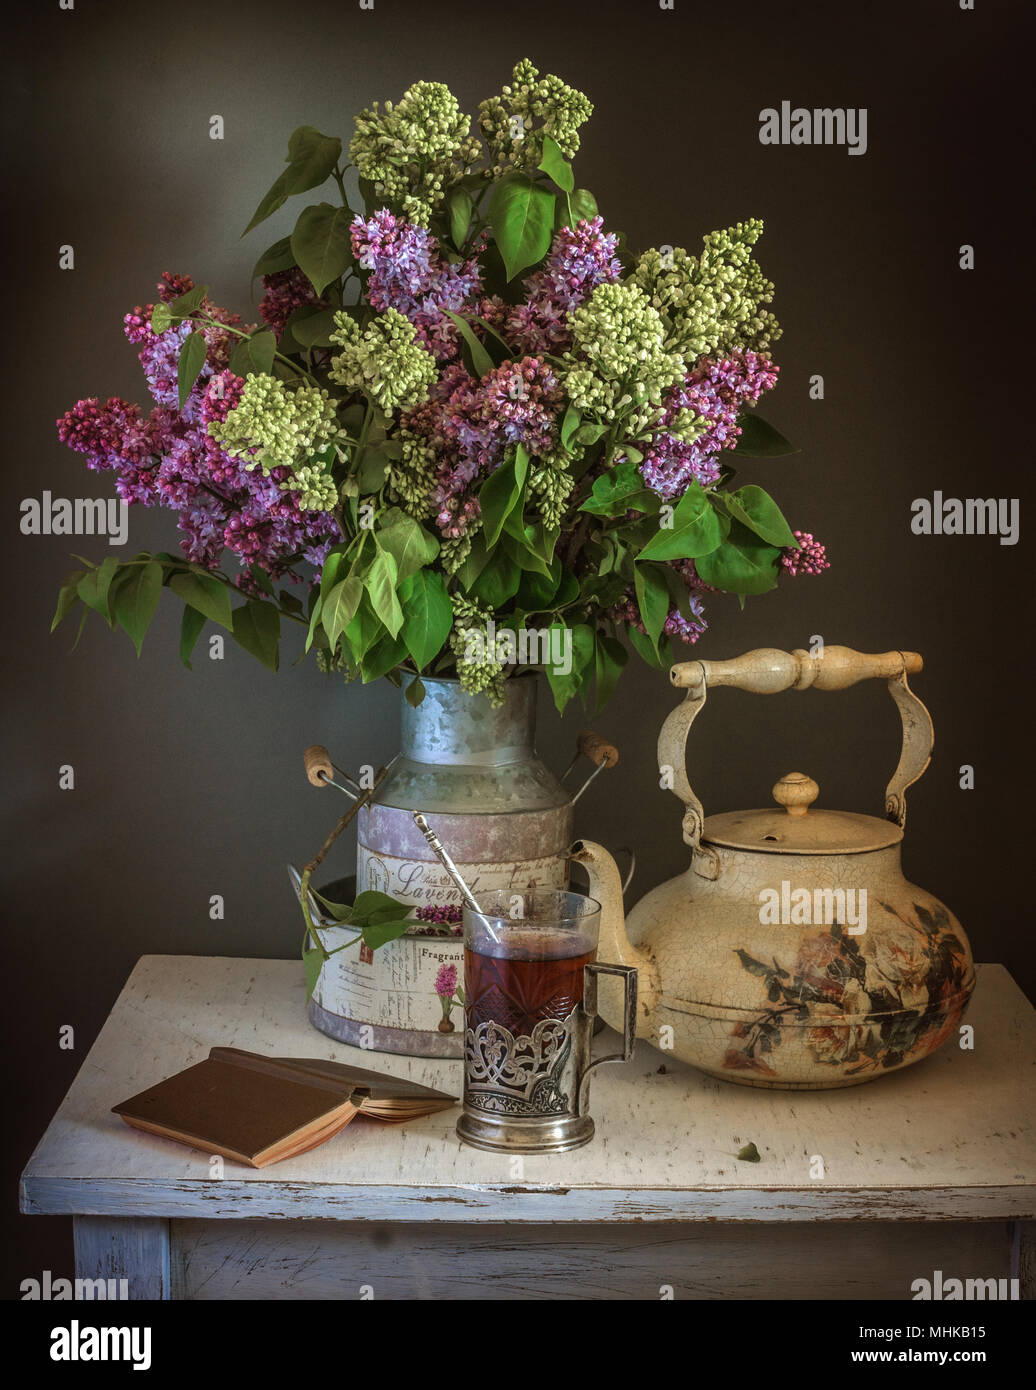 still life with flowers and a glass of tea. vintage.silence. book. kettle. - Stock Image